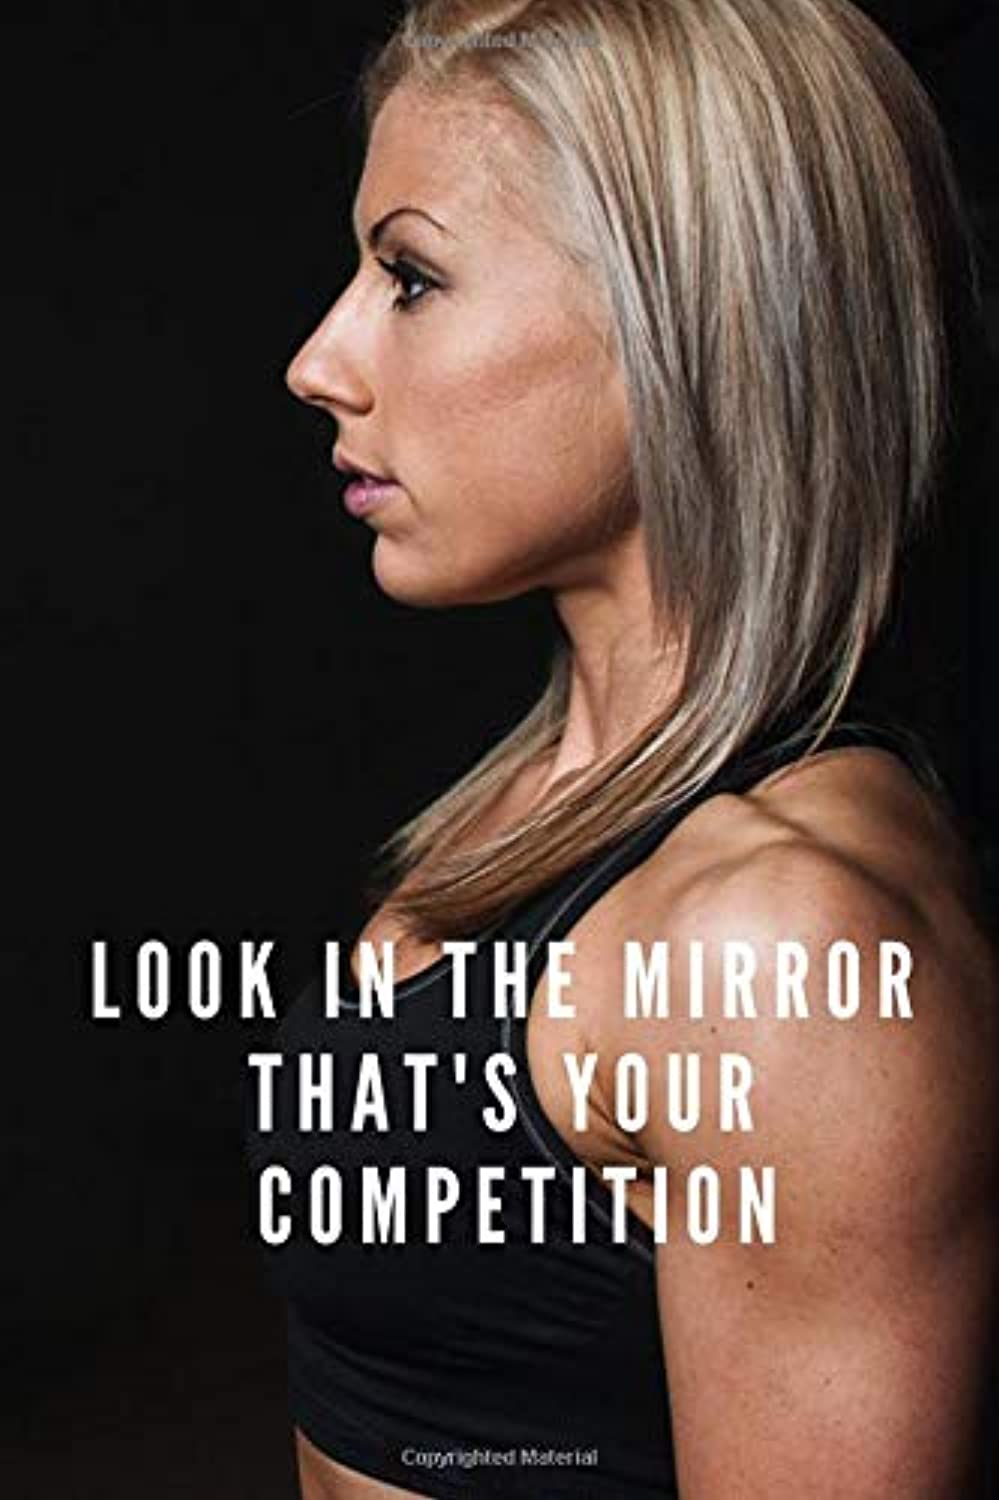 LOOK IN THE MIRROR THAT'S YOUR COMPETITION: MOTIVATIONAL WORKOUT NOTEBOOK (110 PAGES, GRILLE, 6X9)